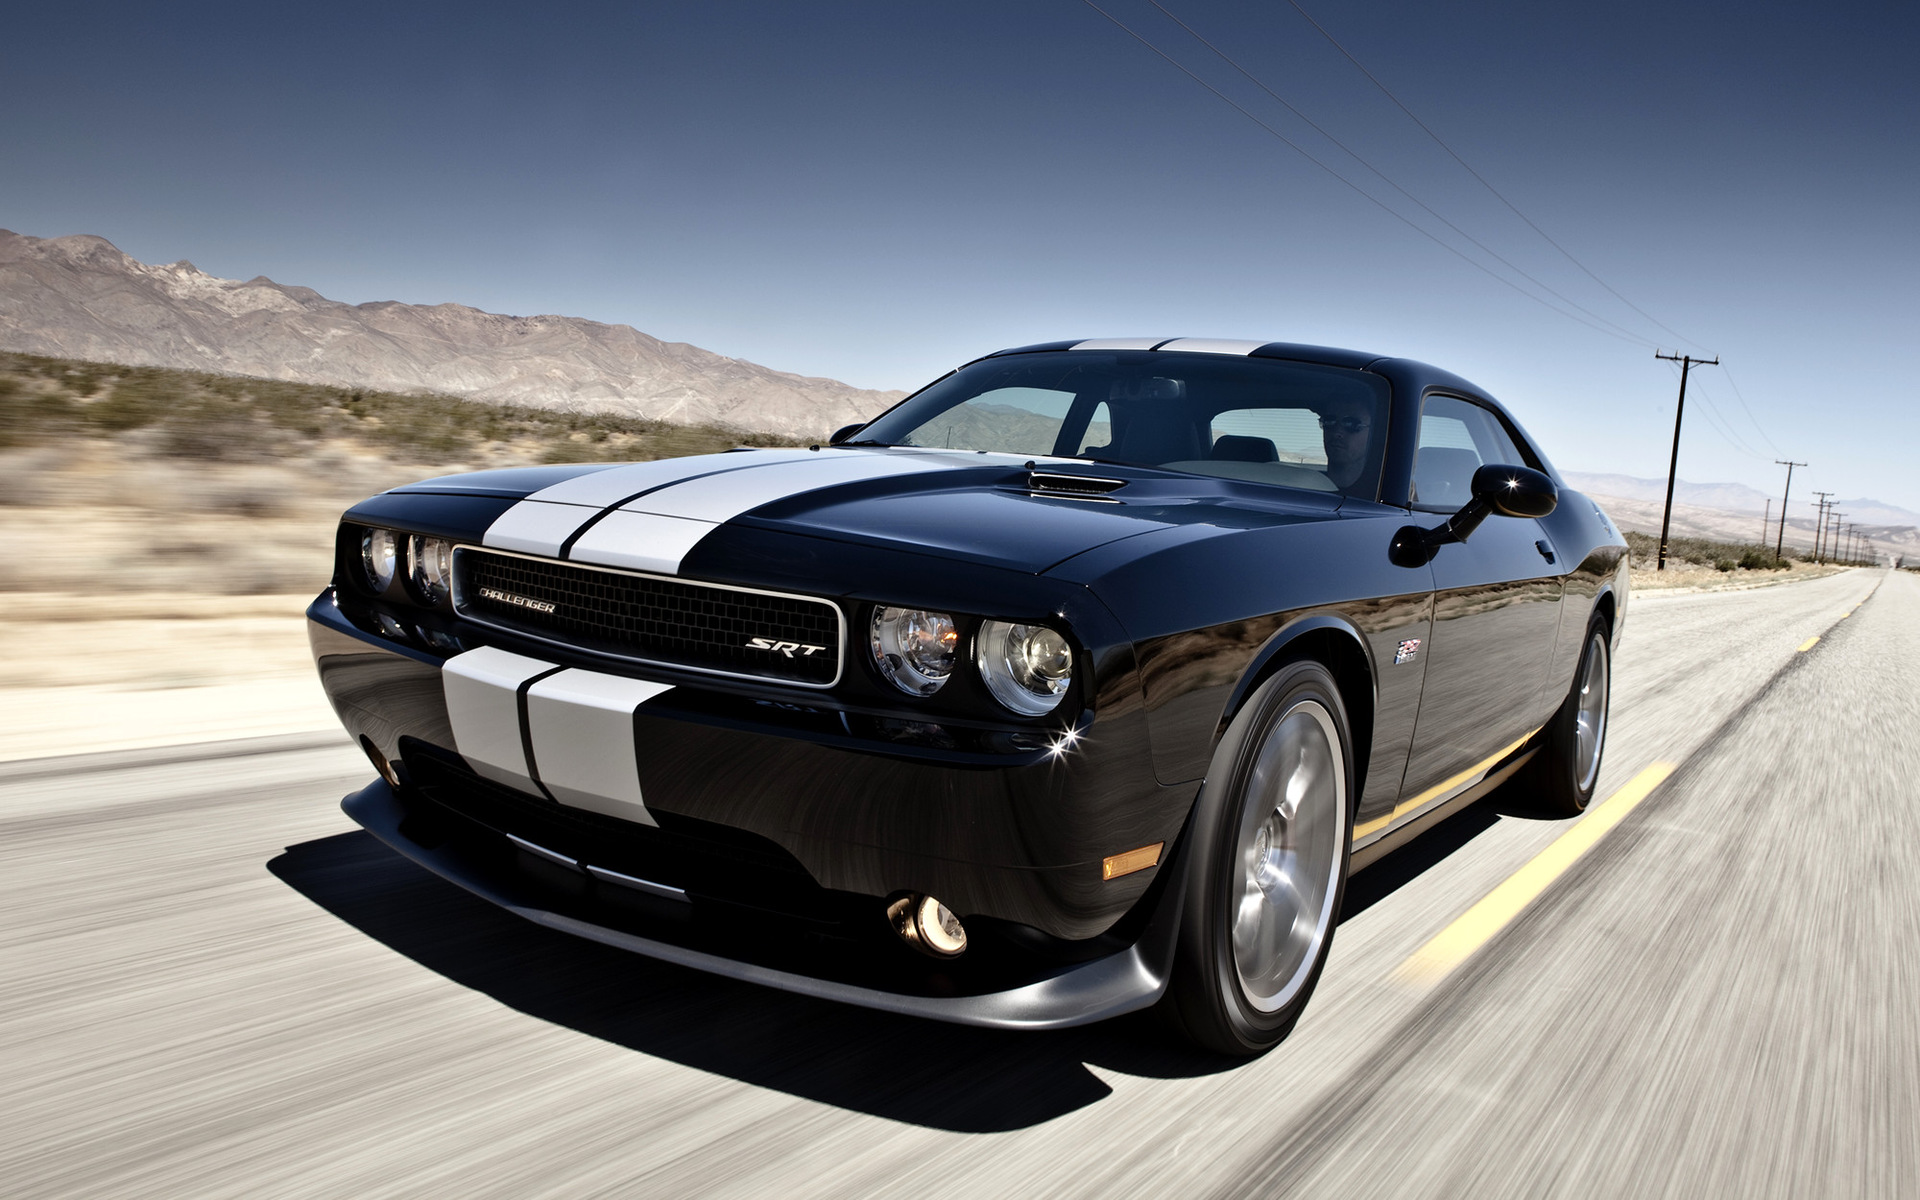 Dodge Challenger Tuning Wallpaper likewise 1971 Dodge Challenger Pictures C6484 pi60839 in addition 2015 Dodge Journey Overview C24493 likewise Ram 1500 Quad Cab as well News. on 2014 dodge ram srt 10